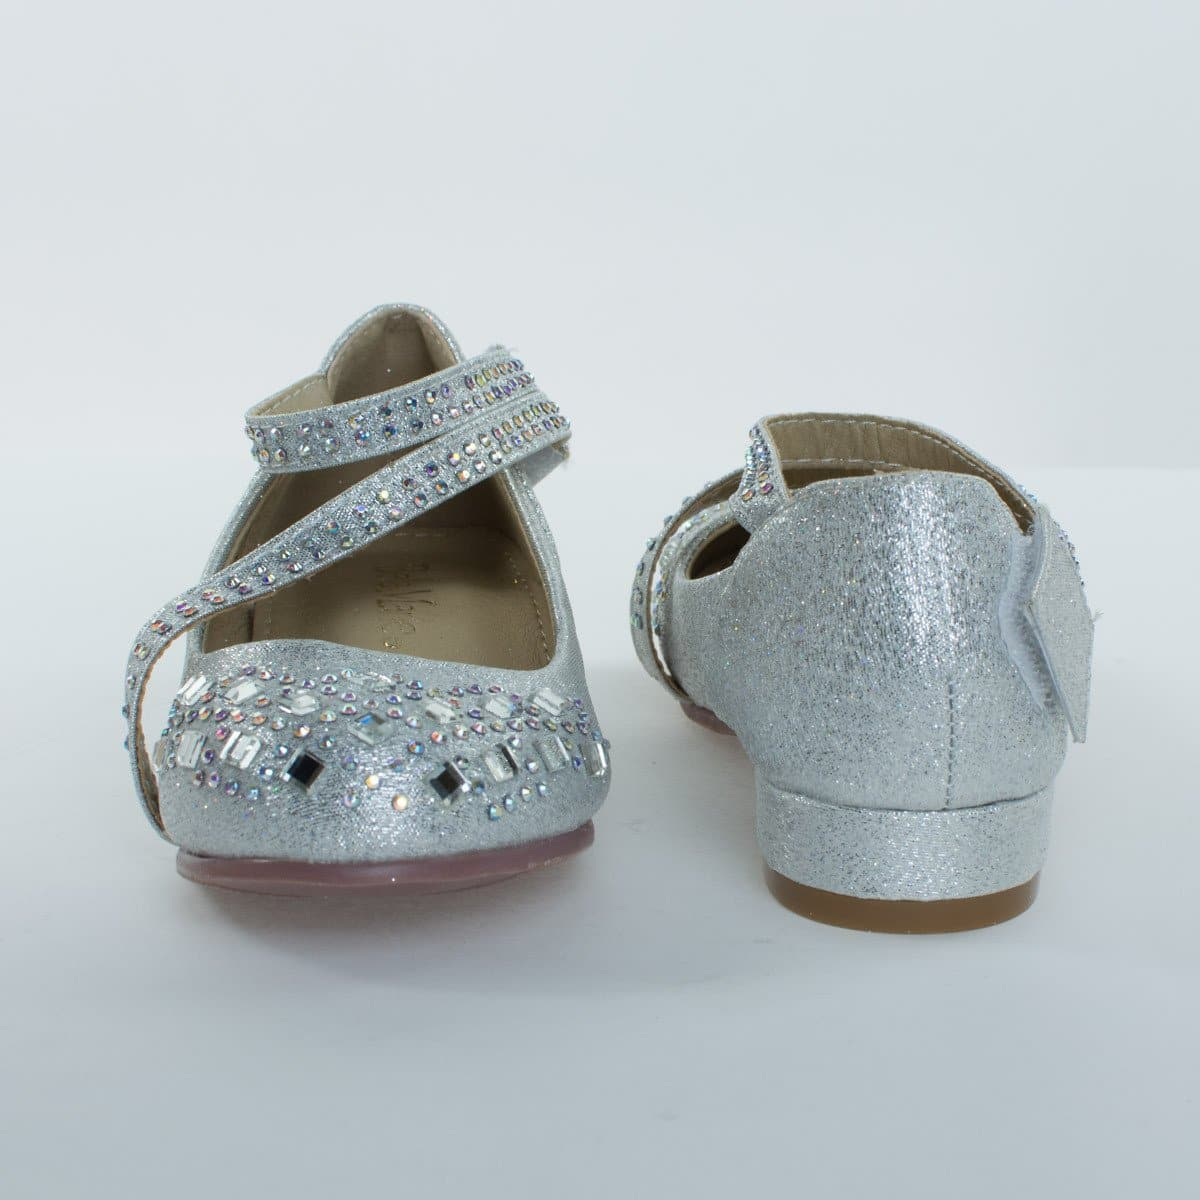 Kate8K By Bella Marie, Girl's Glitter & Rhinestone Stud, Round Toe Pump w 2 Straps, Children Kid